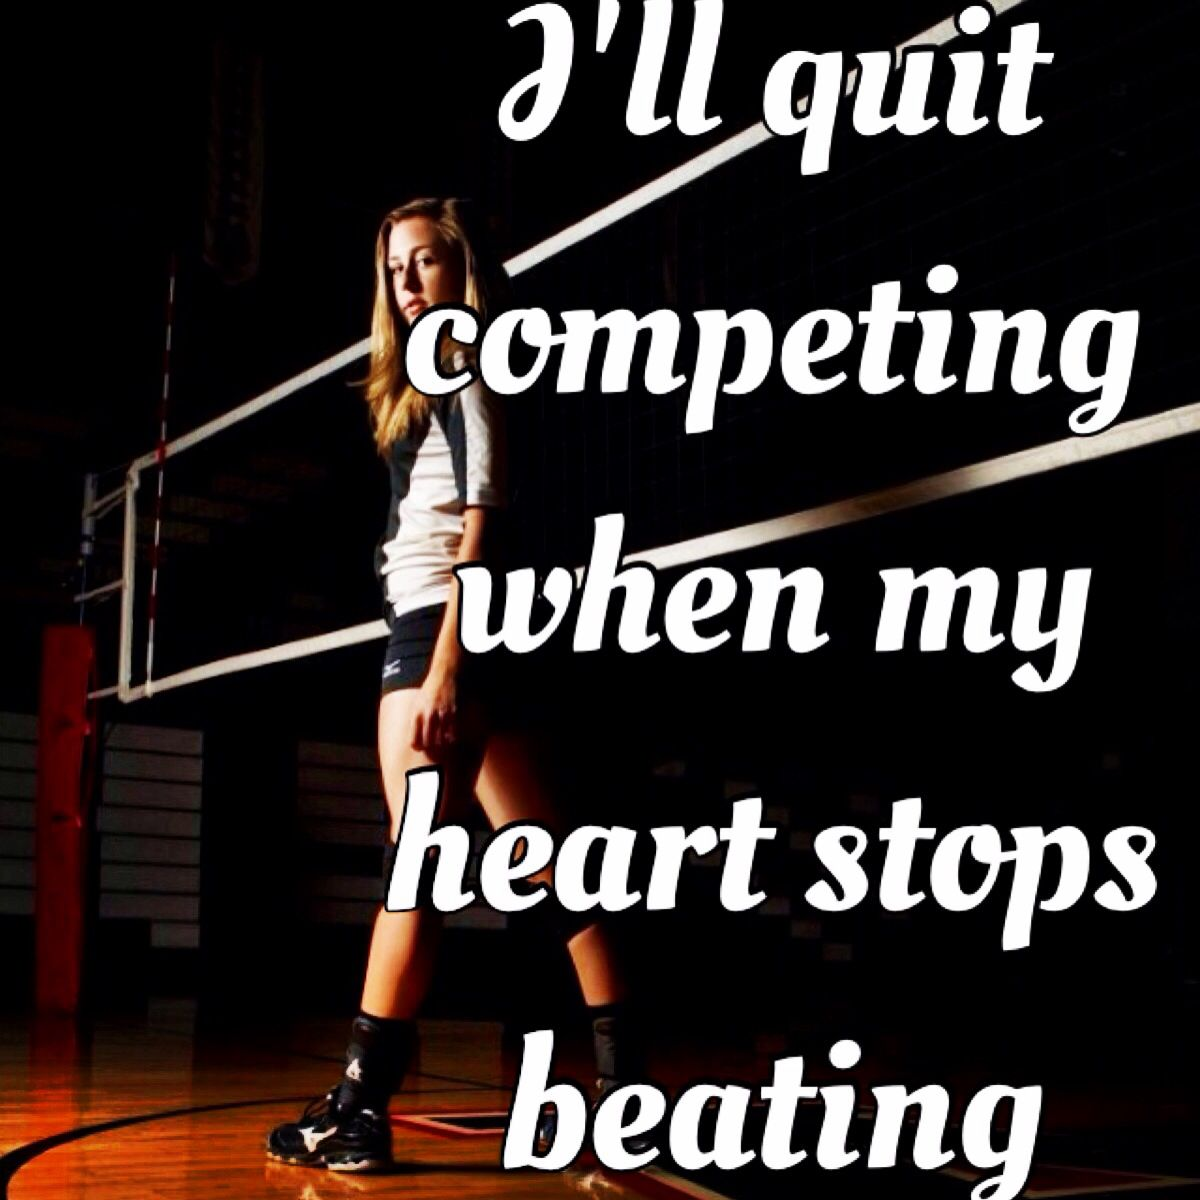 Motivational Quotes For Sports Teams: Follow Volleyball_ac On Instagram If You Love Your Daily